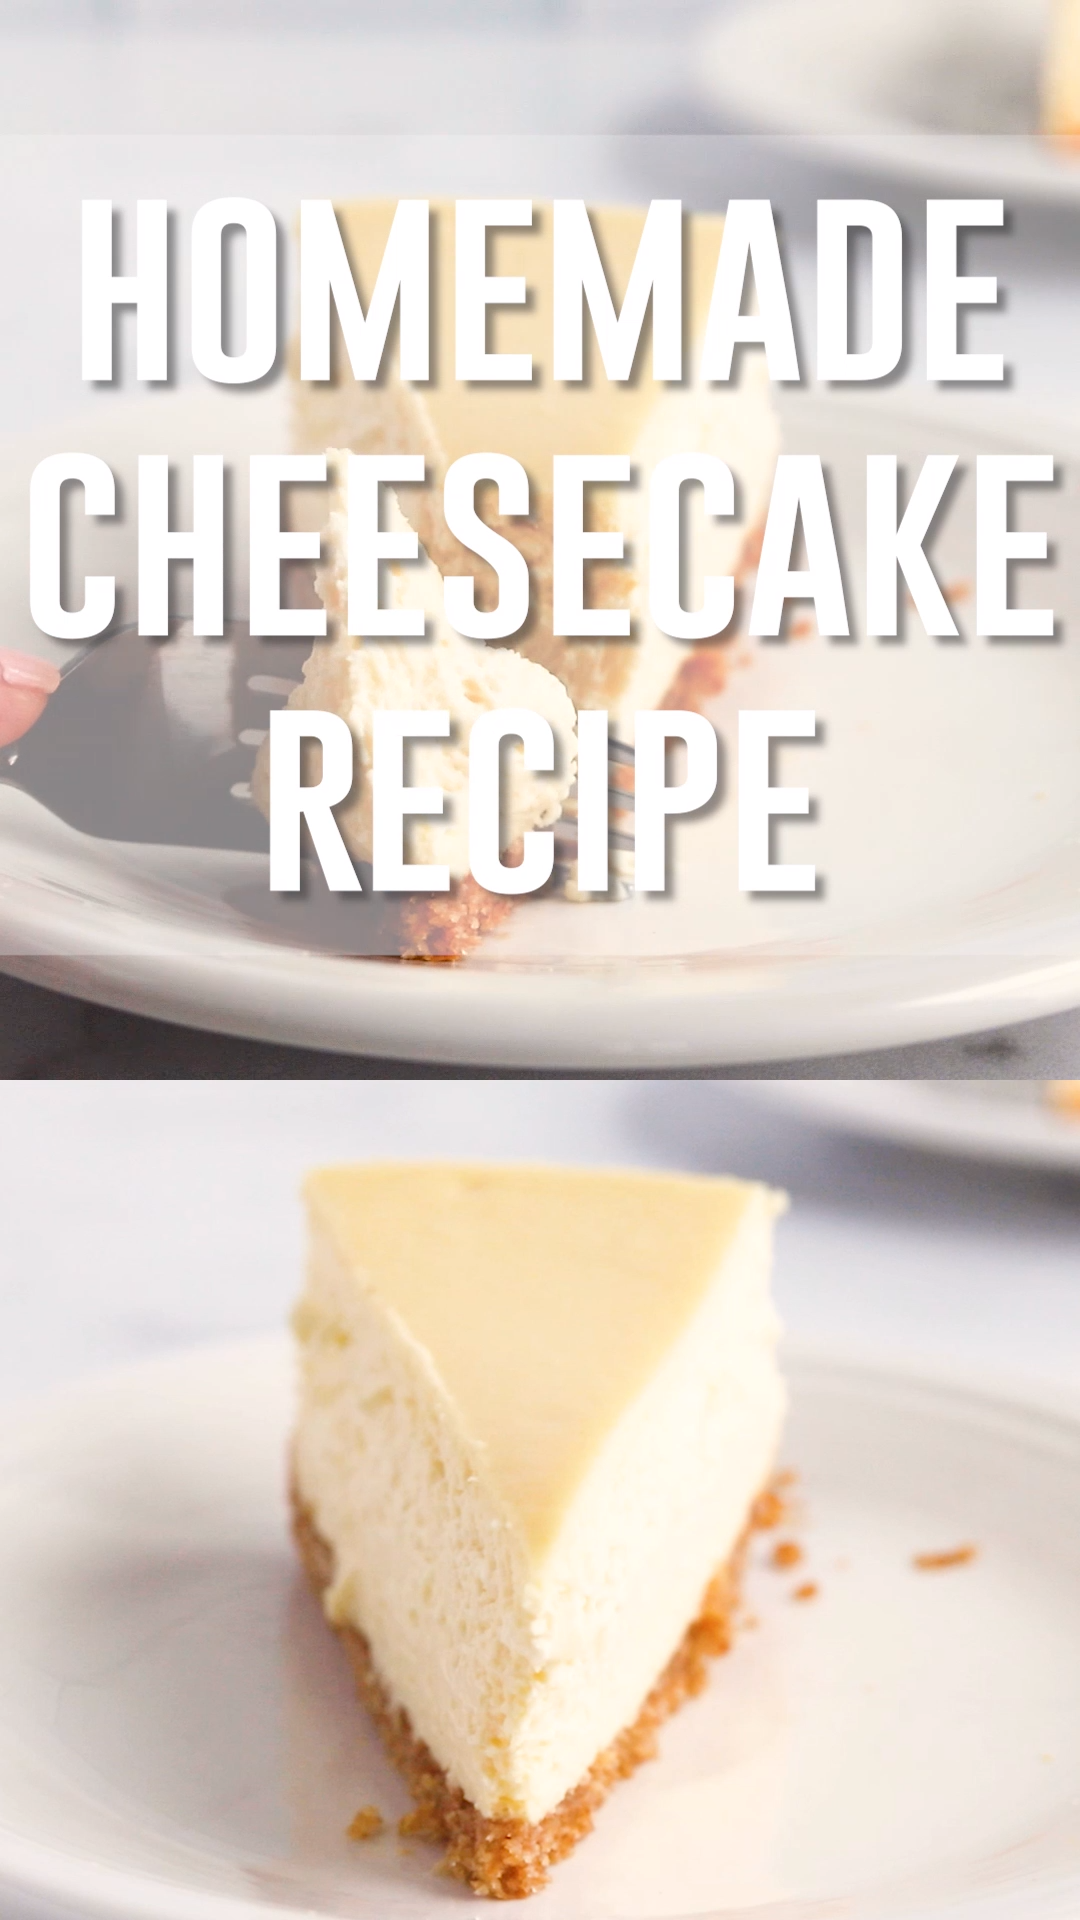 Homemade Cheesecake